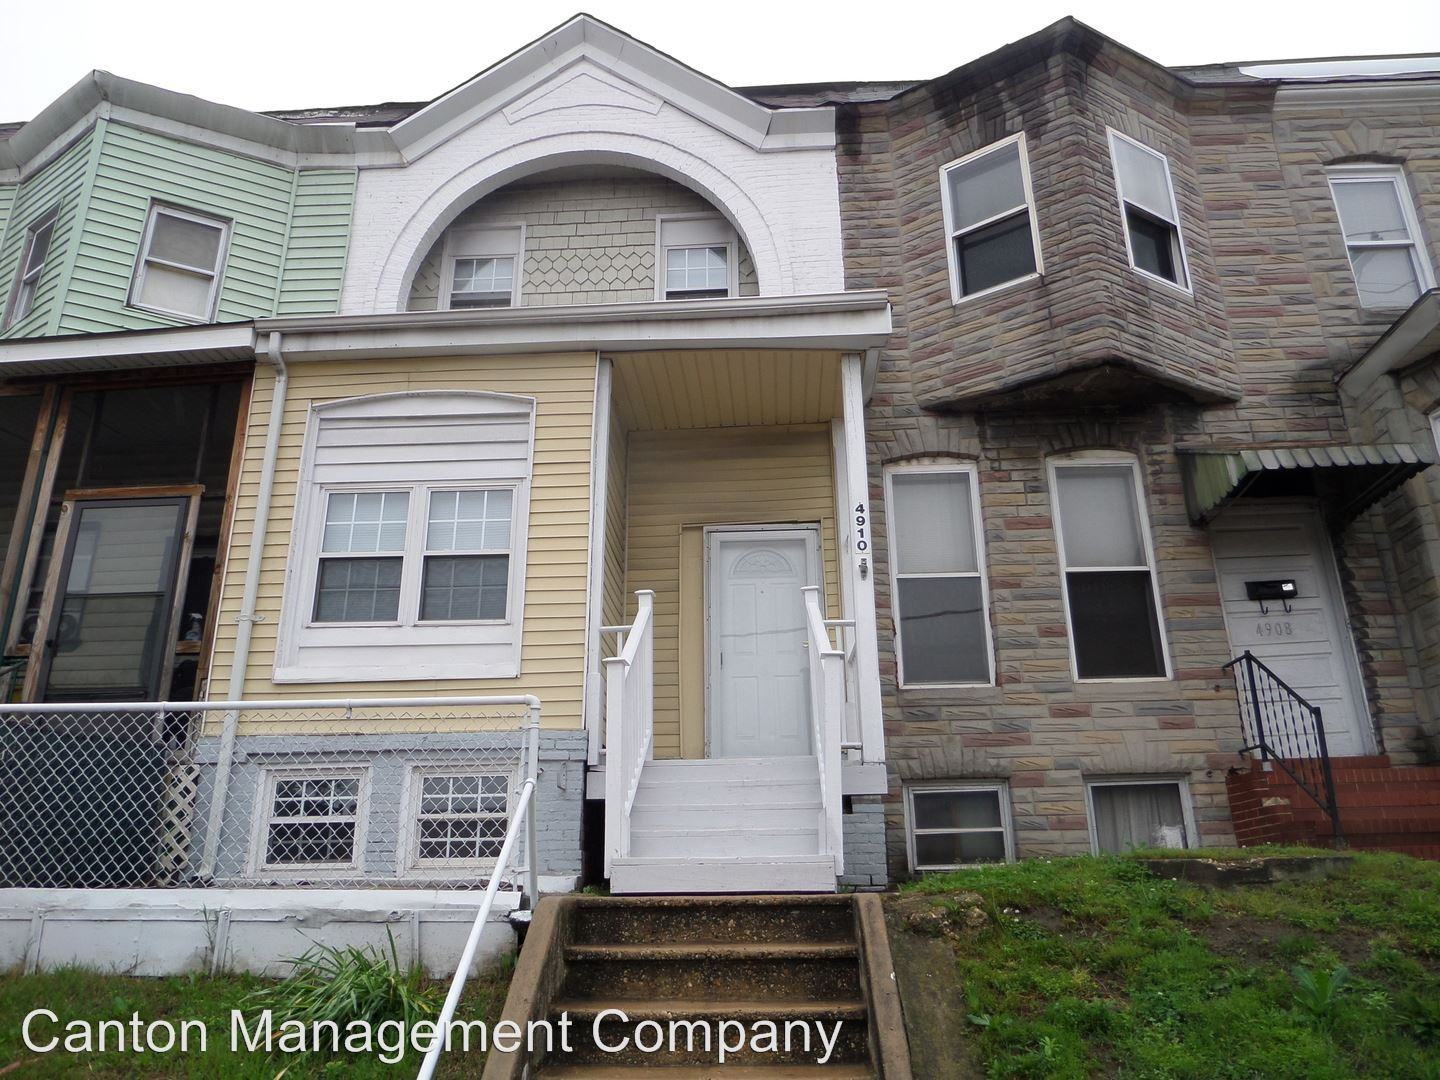 4910 Pennington Ave Baltimore Md 21226 2 Bedroom House For Rent For 950 Month Zumper